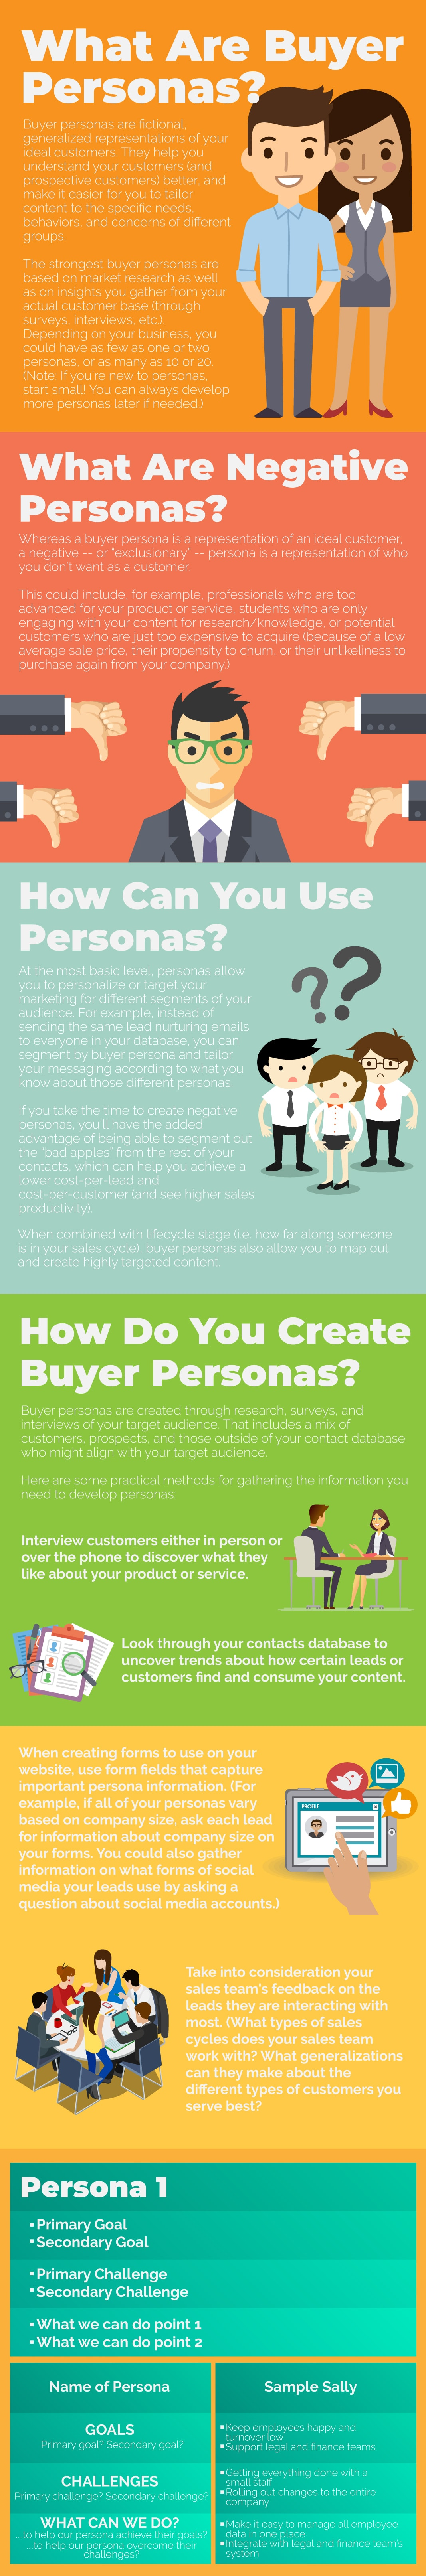 Buyer personas infographic